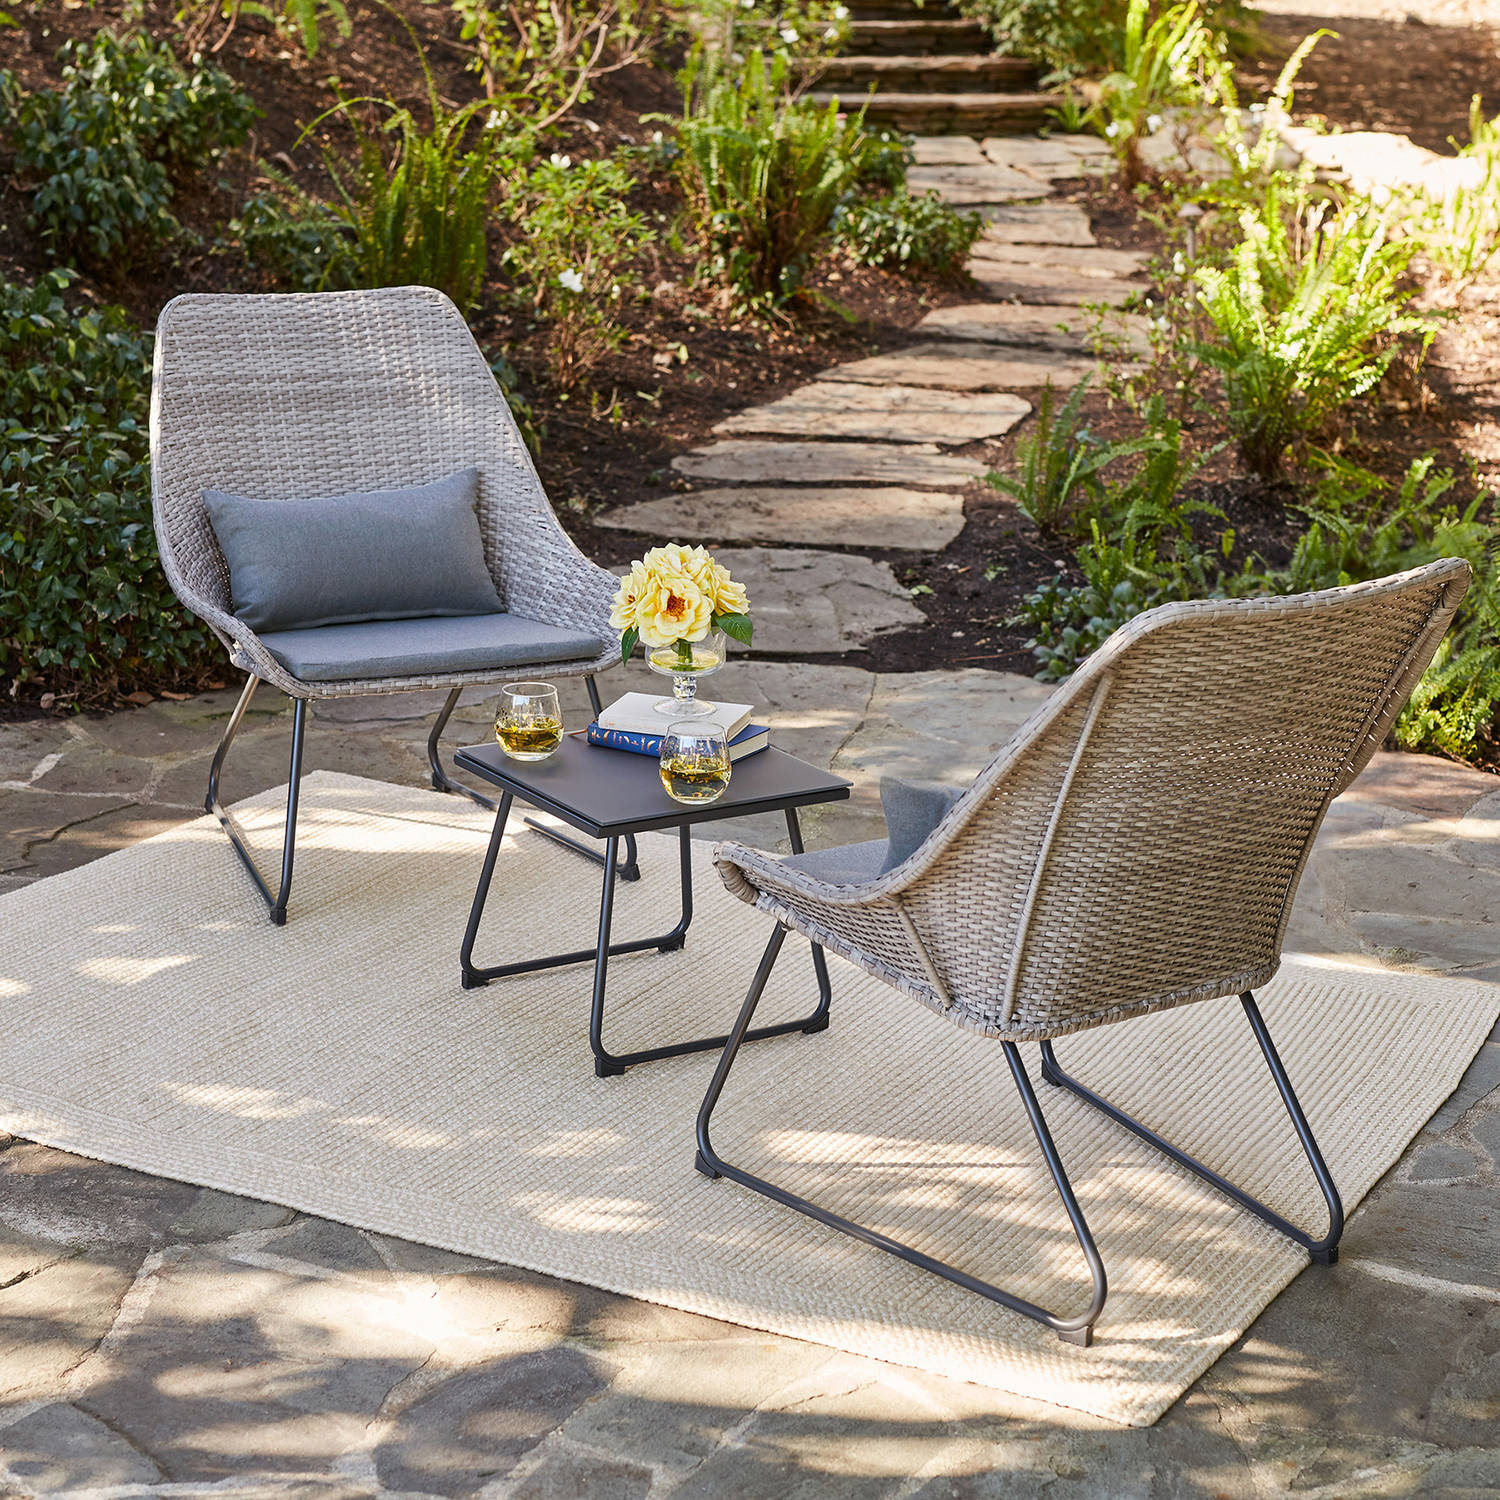 Hanover 3-Piece Outdoor Wicker Chat Set by Hanover